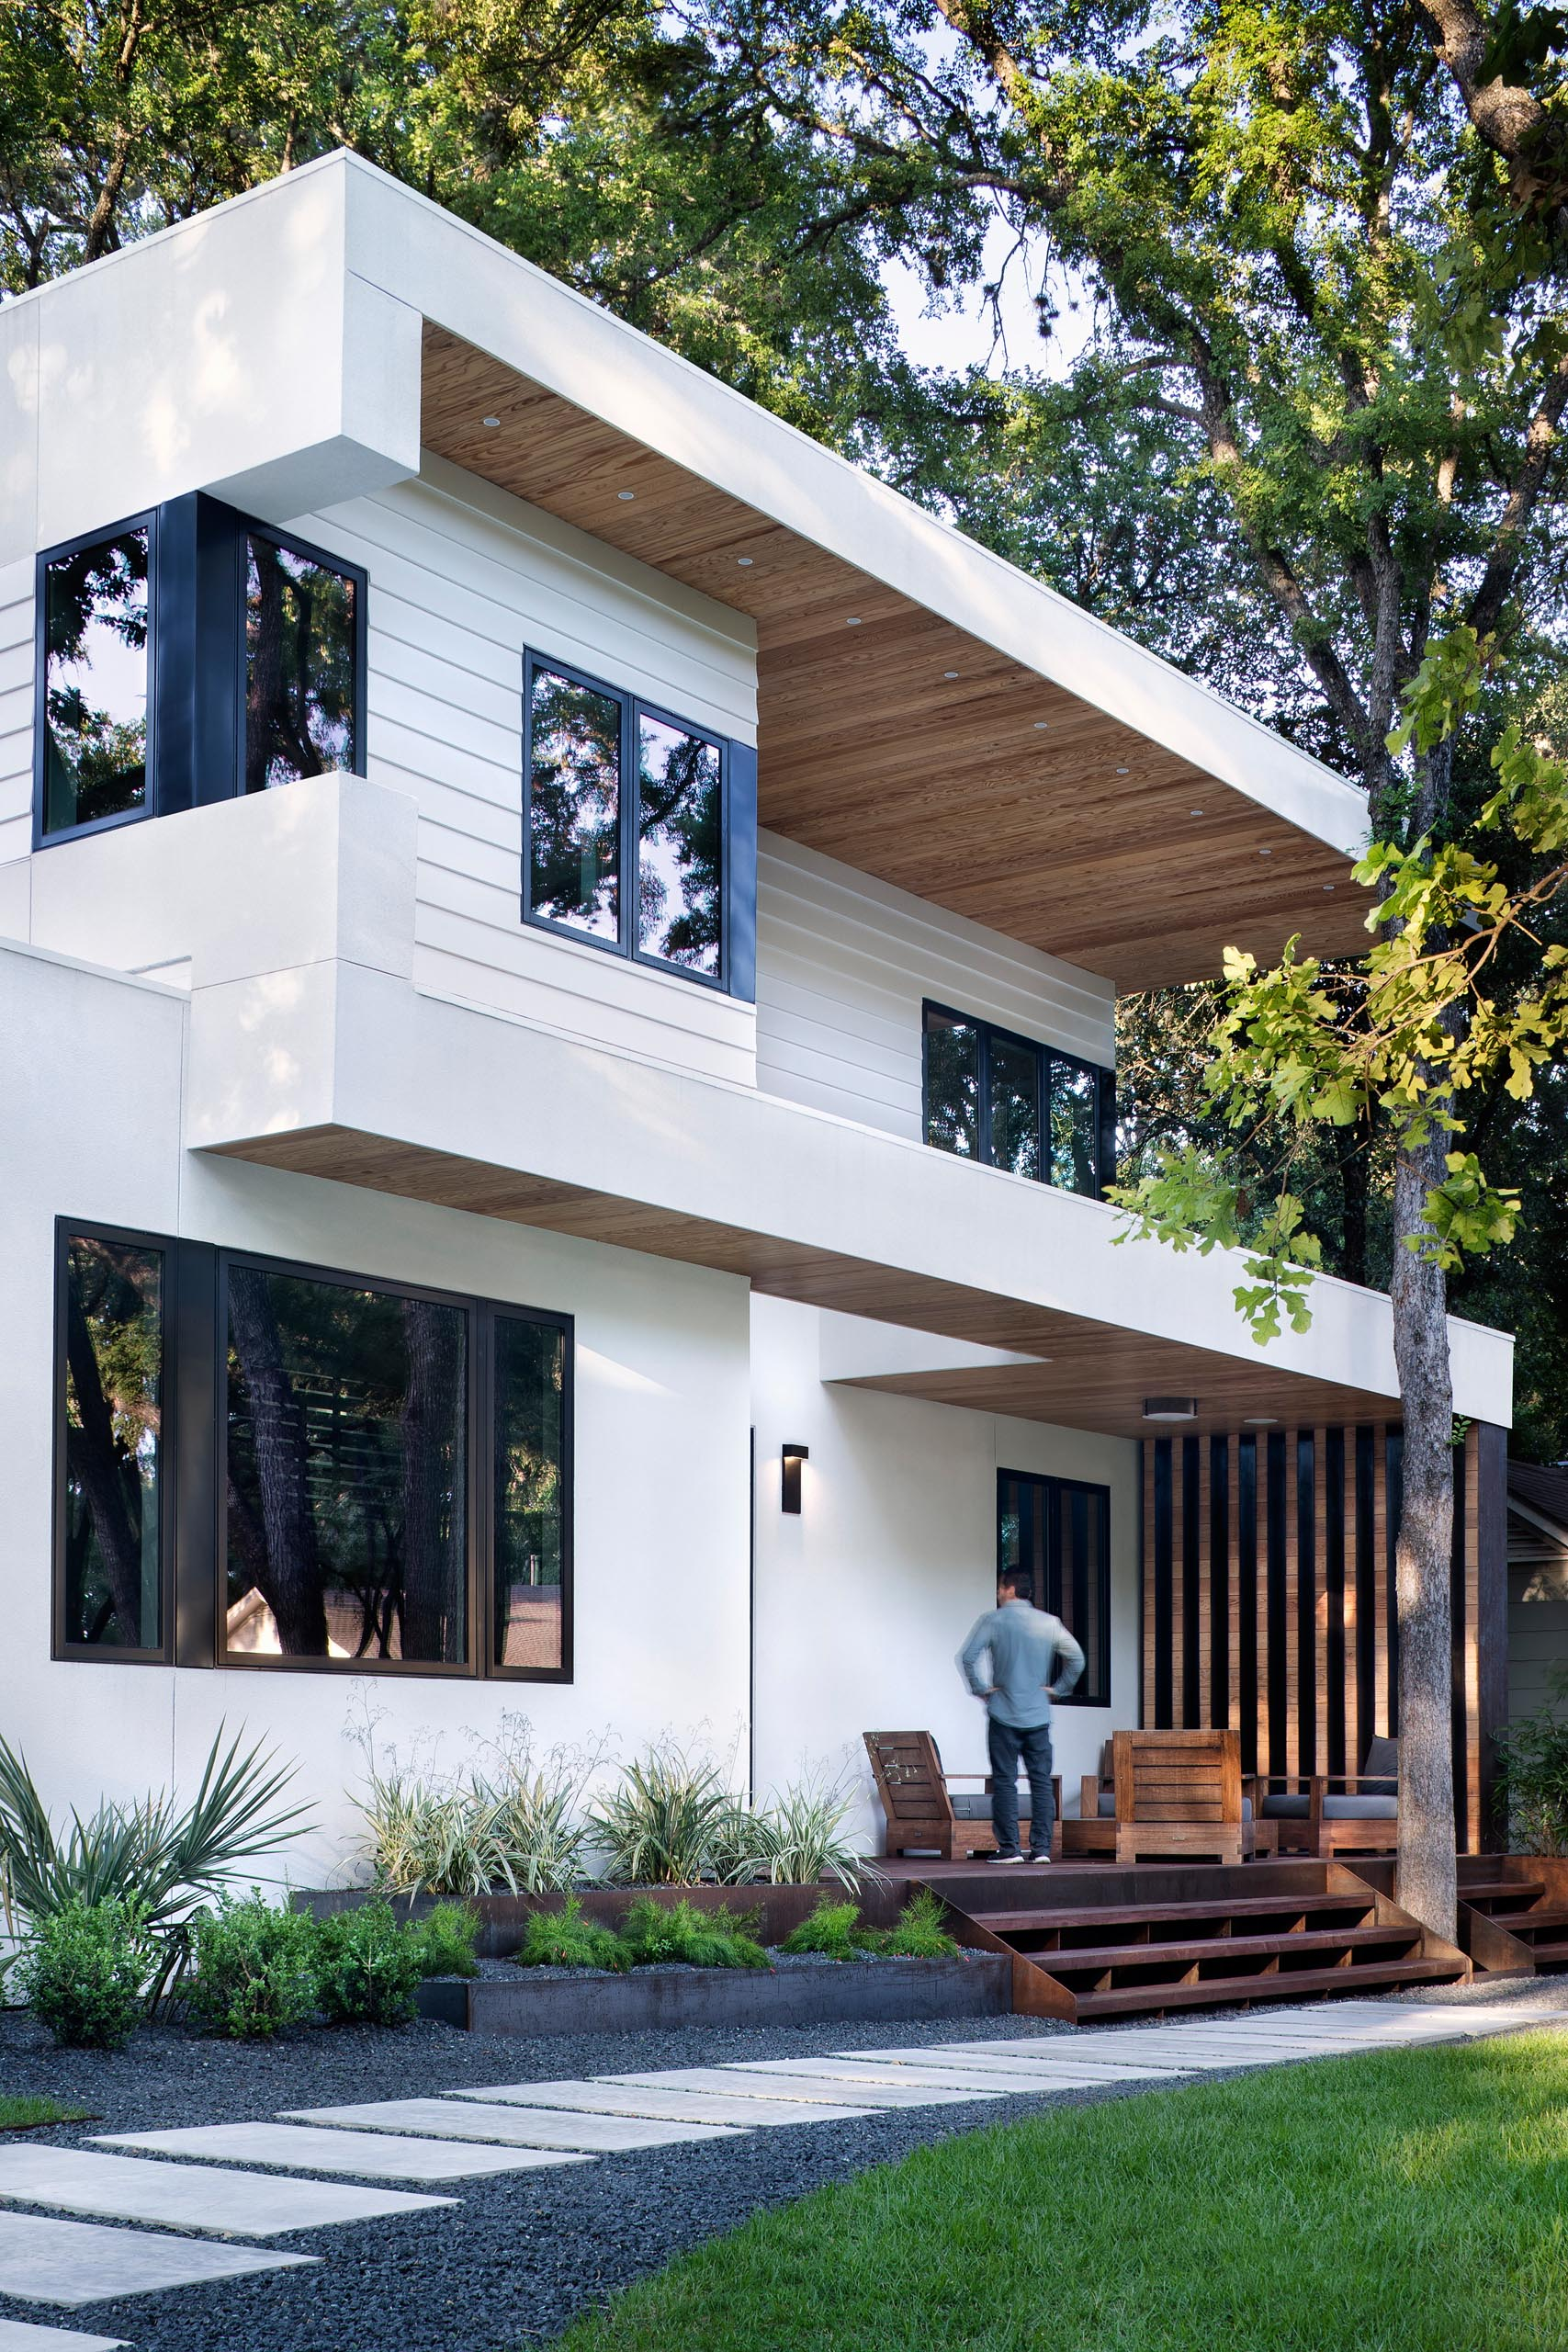 A modern white house with a front porch.